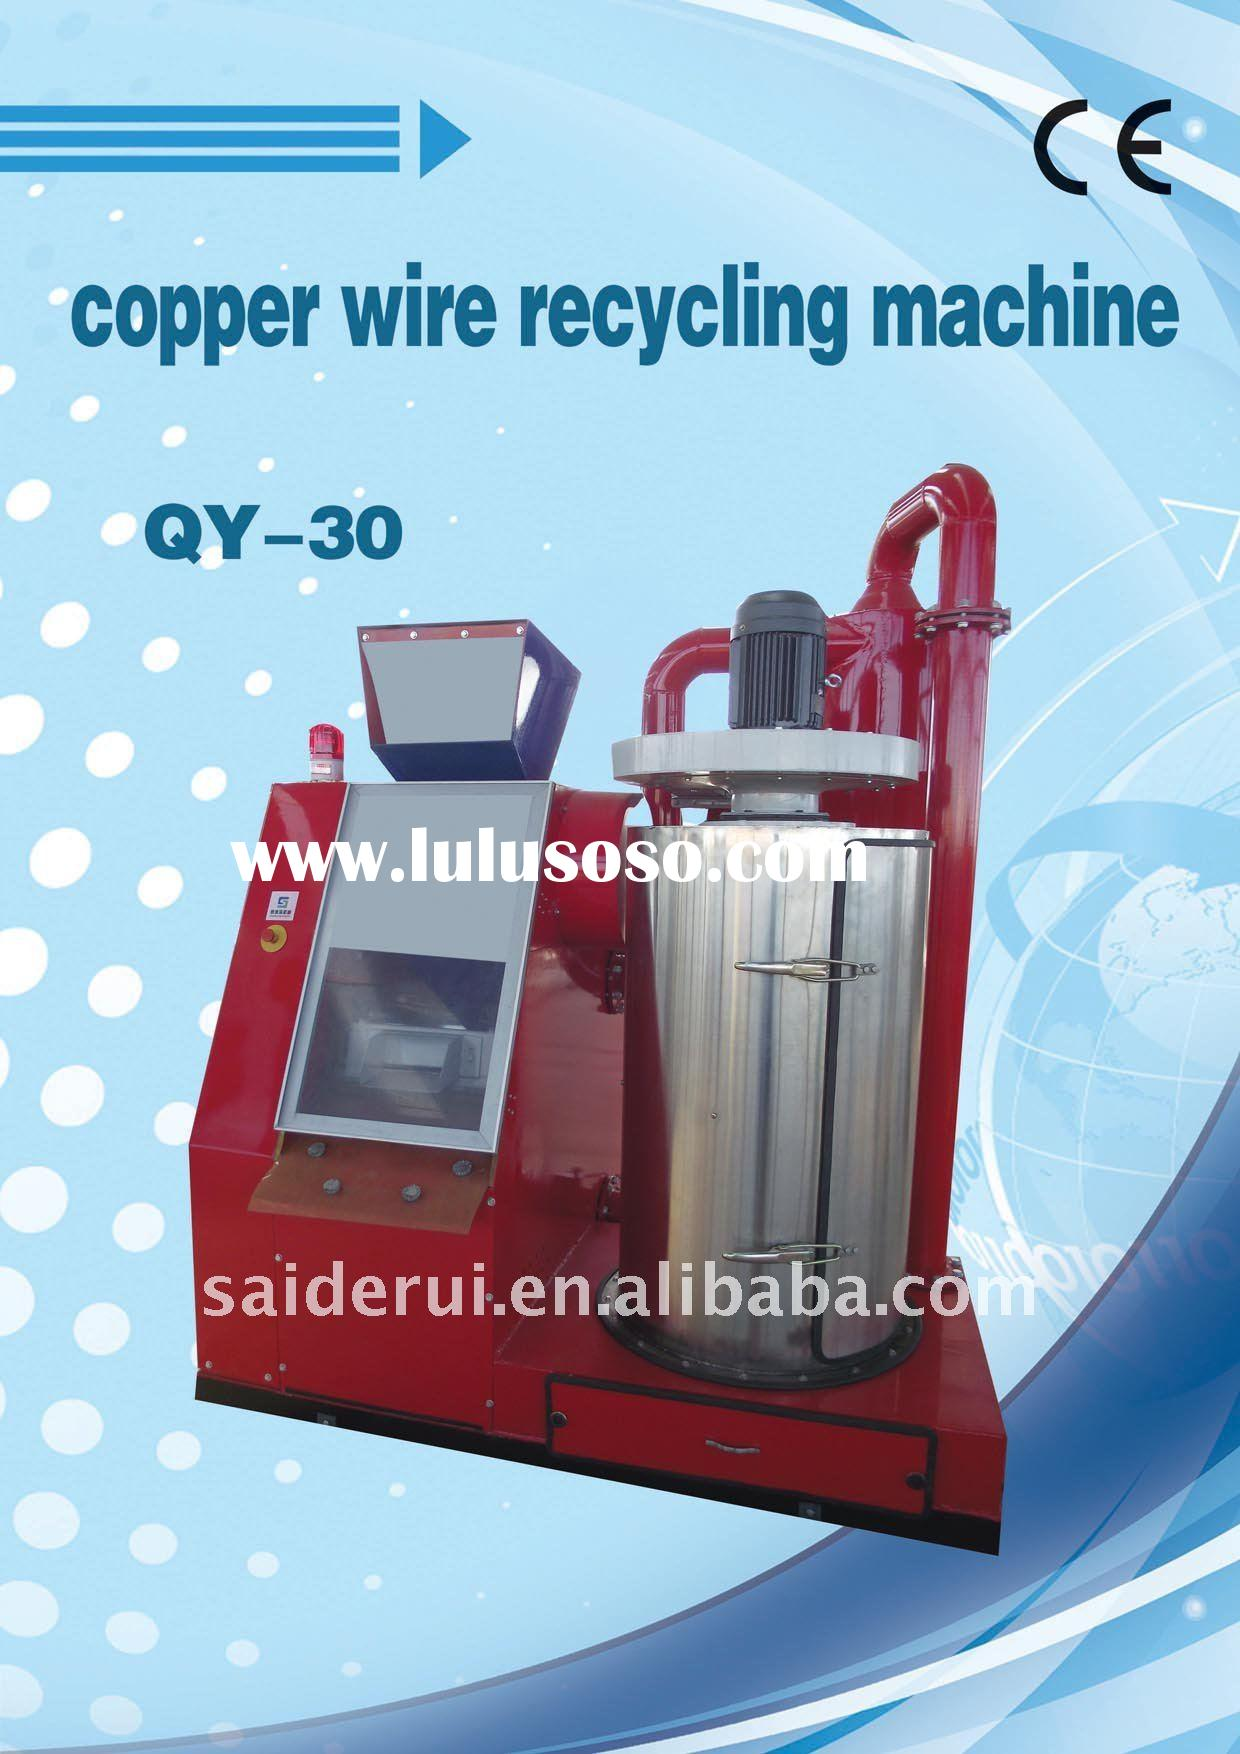 scrap wire recycling system, copper cable shredder and separator, granulator